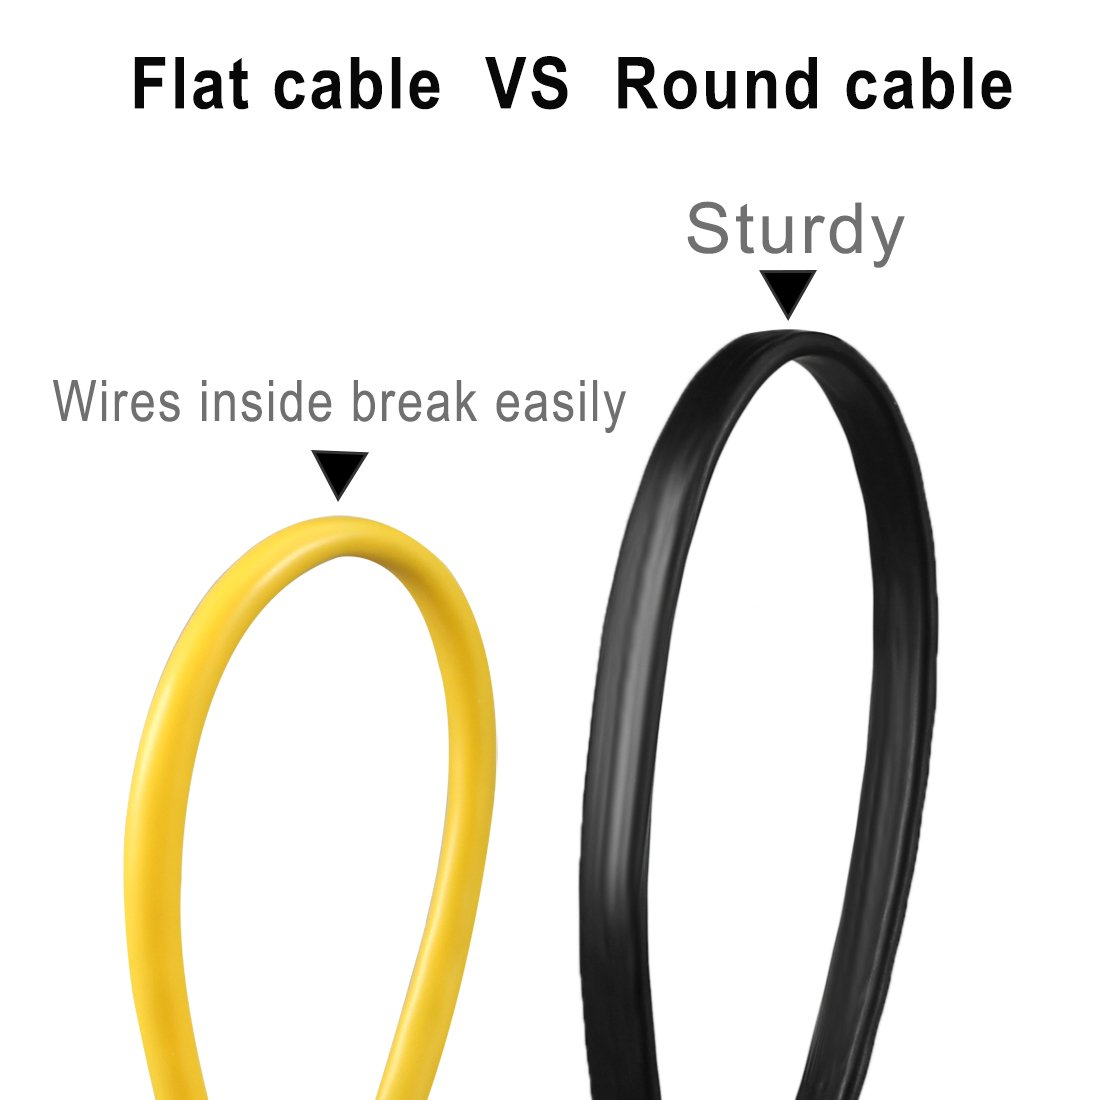 Hub Router PC Modem 10 FT 3Meter High Speed 10 Gigabit Shielded Flat Network Wire with Gold-Plated RJ45 Connectors for Computer Switch uxcell Cat7 Ethernet Cable IP Cameras 2Pcs Black